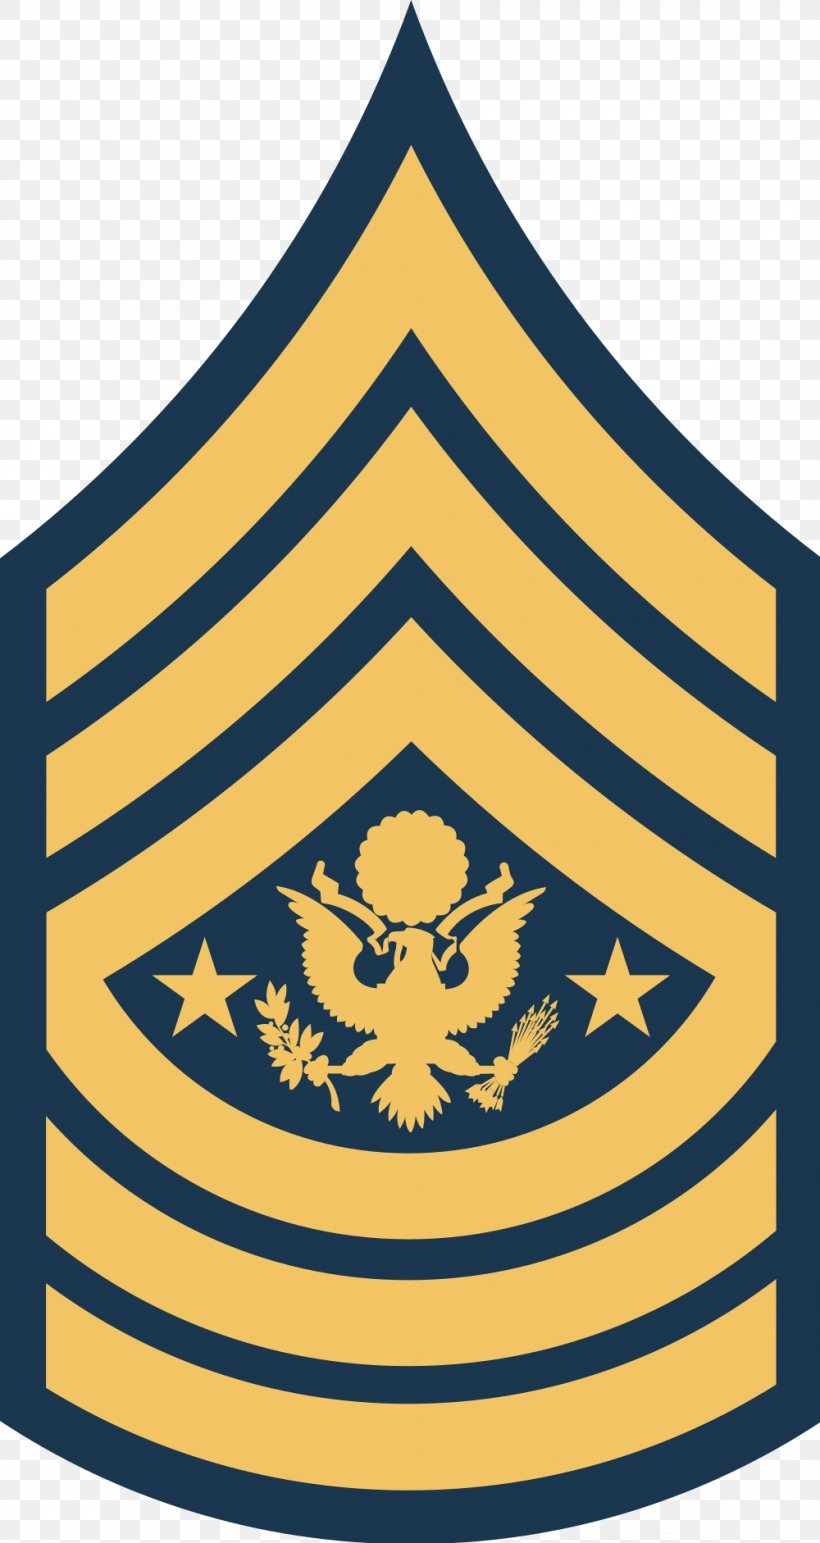 Sergeant Major Of The Army United States Army Enlisted Rank Insignia, PNG, 1000x1882px, Sergeant Major Of The Army, Area, Army, Army Officer, Enlisted Rank Download Free